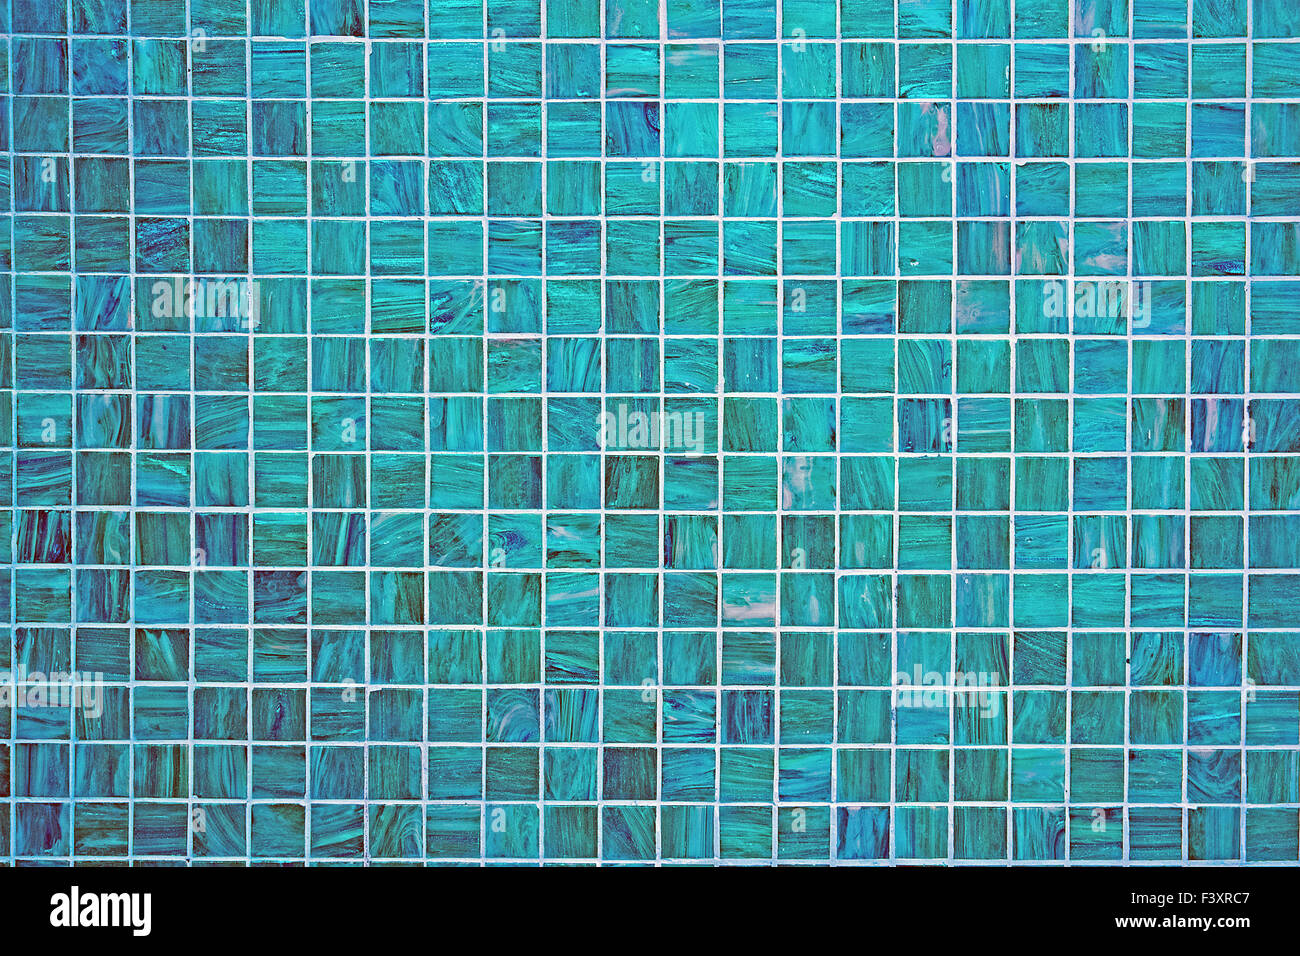 https www alamy com stock photo a blue square tiled background with small mosaic tiles 88484935 html